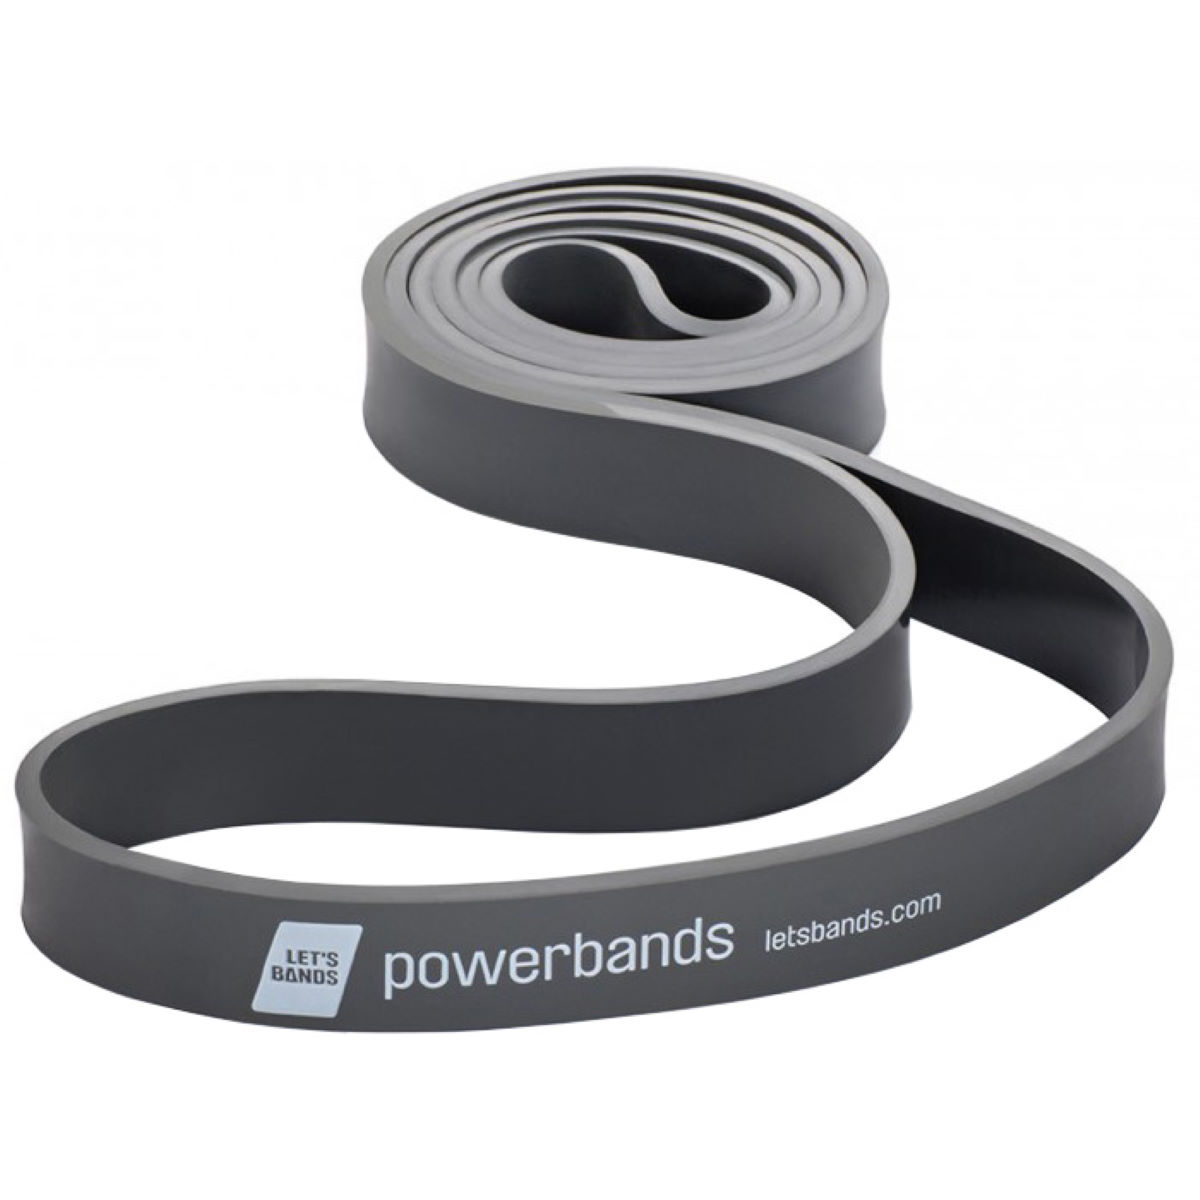 Lets Bands Lets Bands Powerband Max Extra Heavy - Black   Resistance Bands